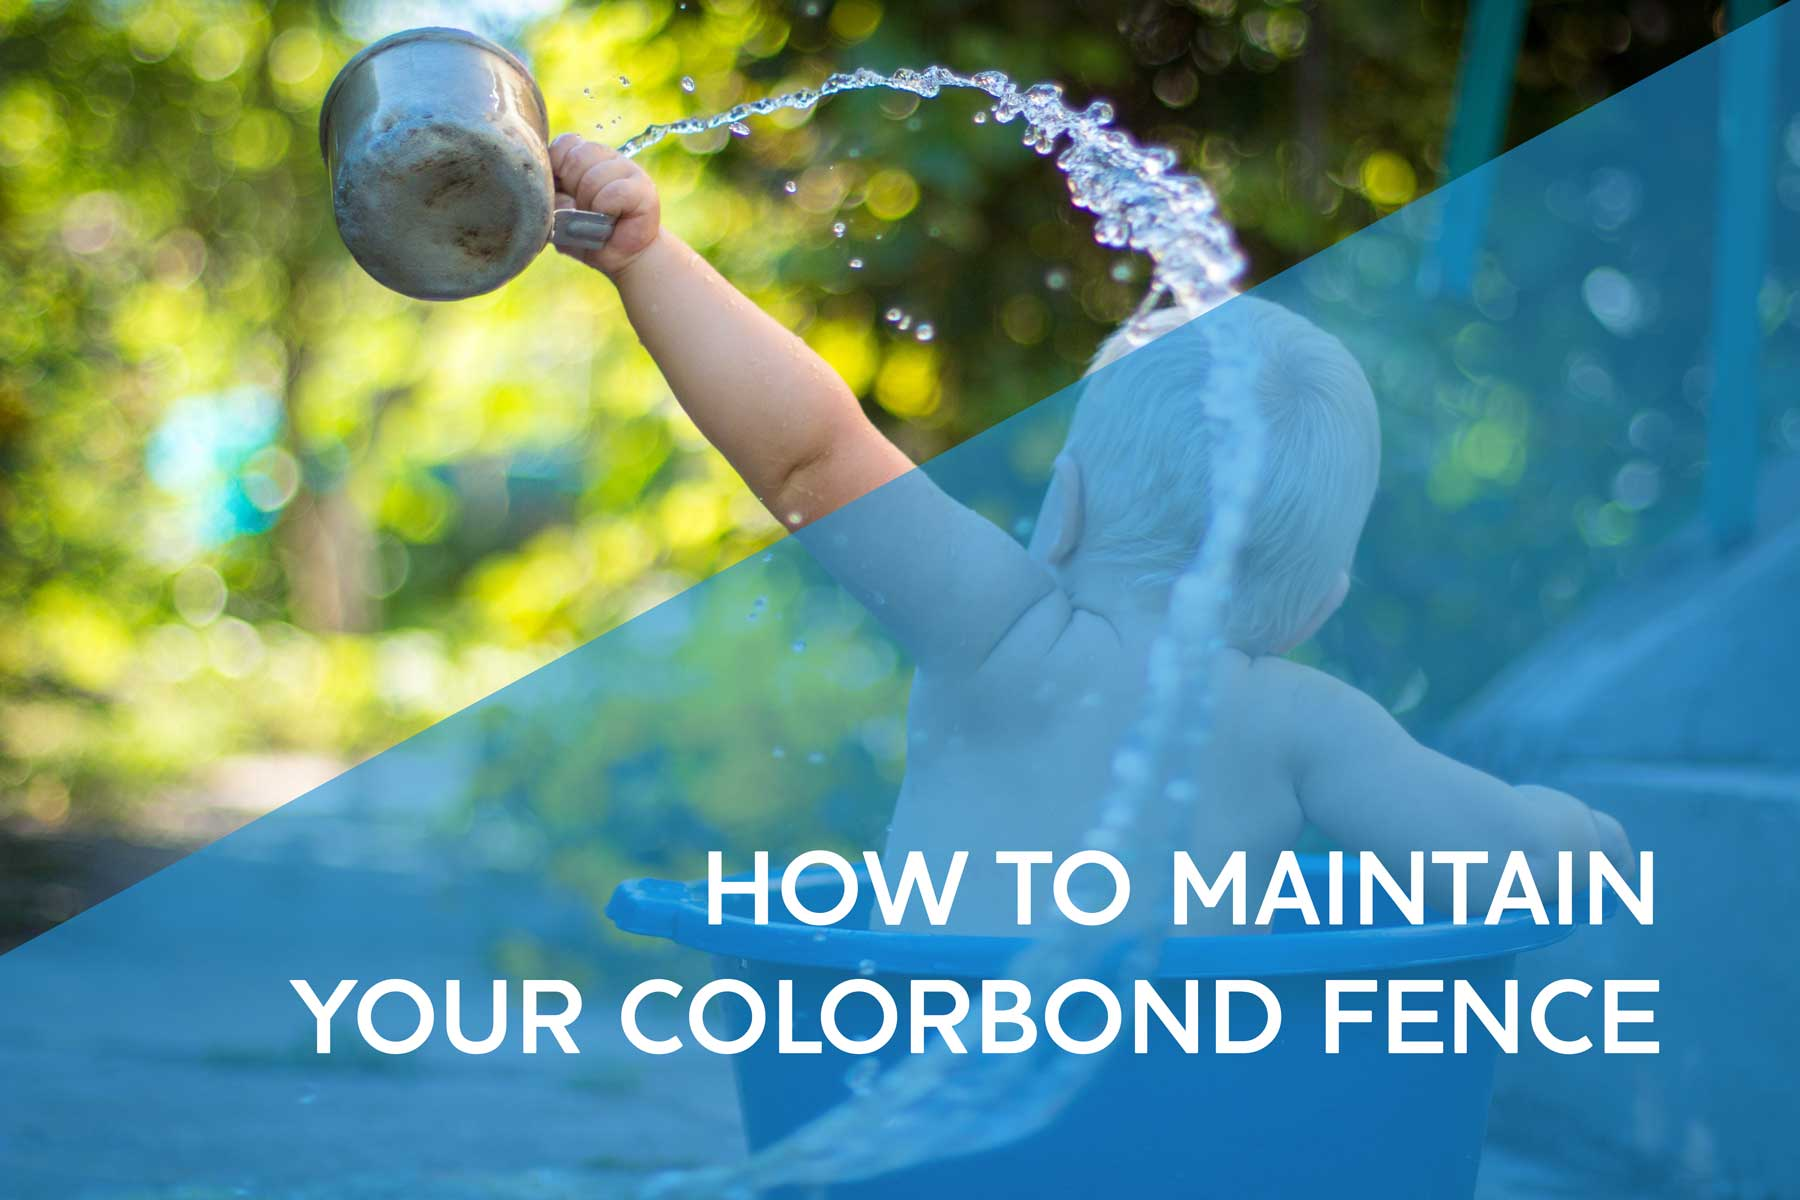 How to Maintain Your Colorbond Fence